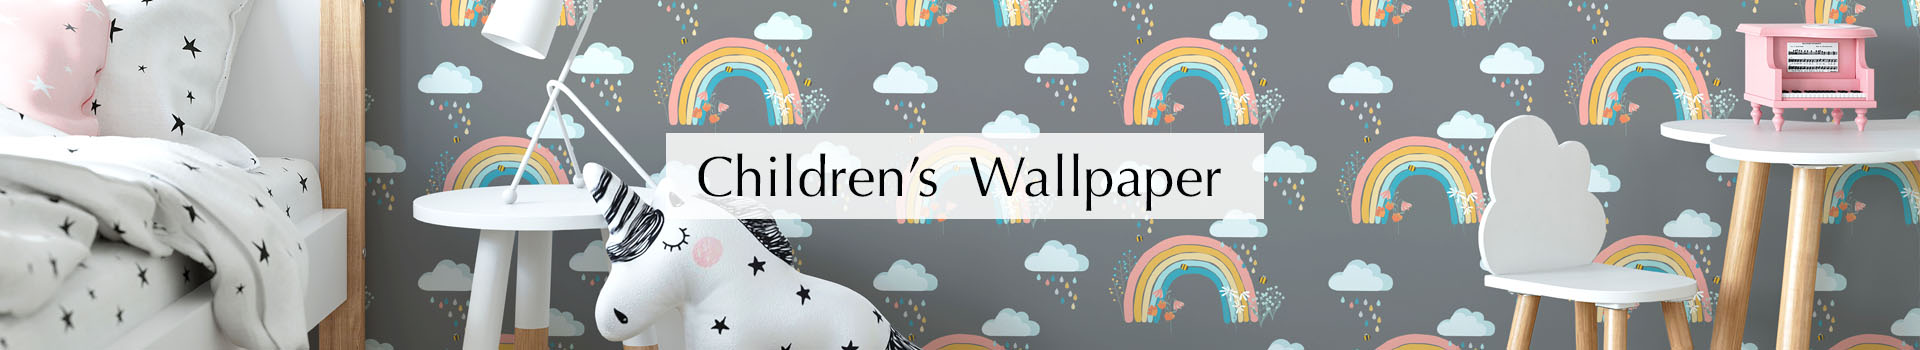 children-s-wallpaper-2.jpg